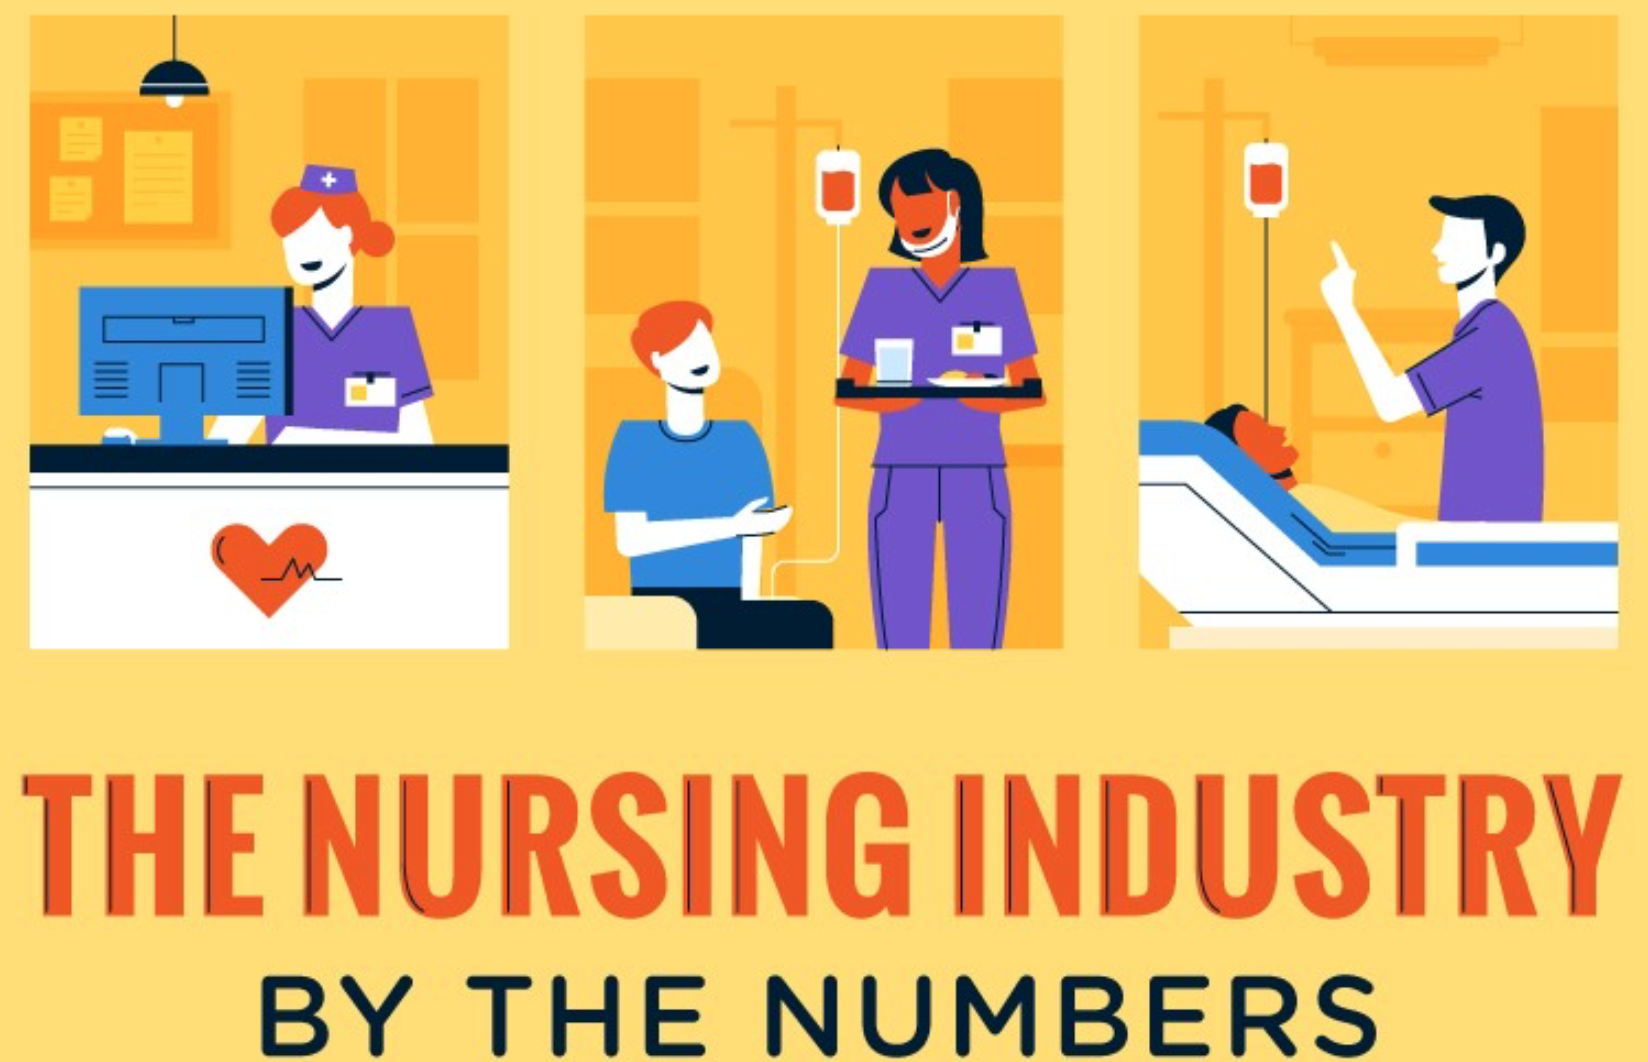 The Nursing Industry by the Numbers; graphic courtesy of author.